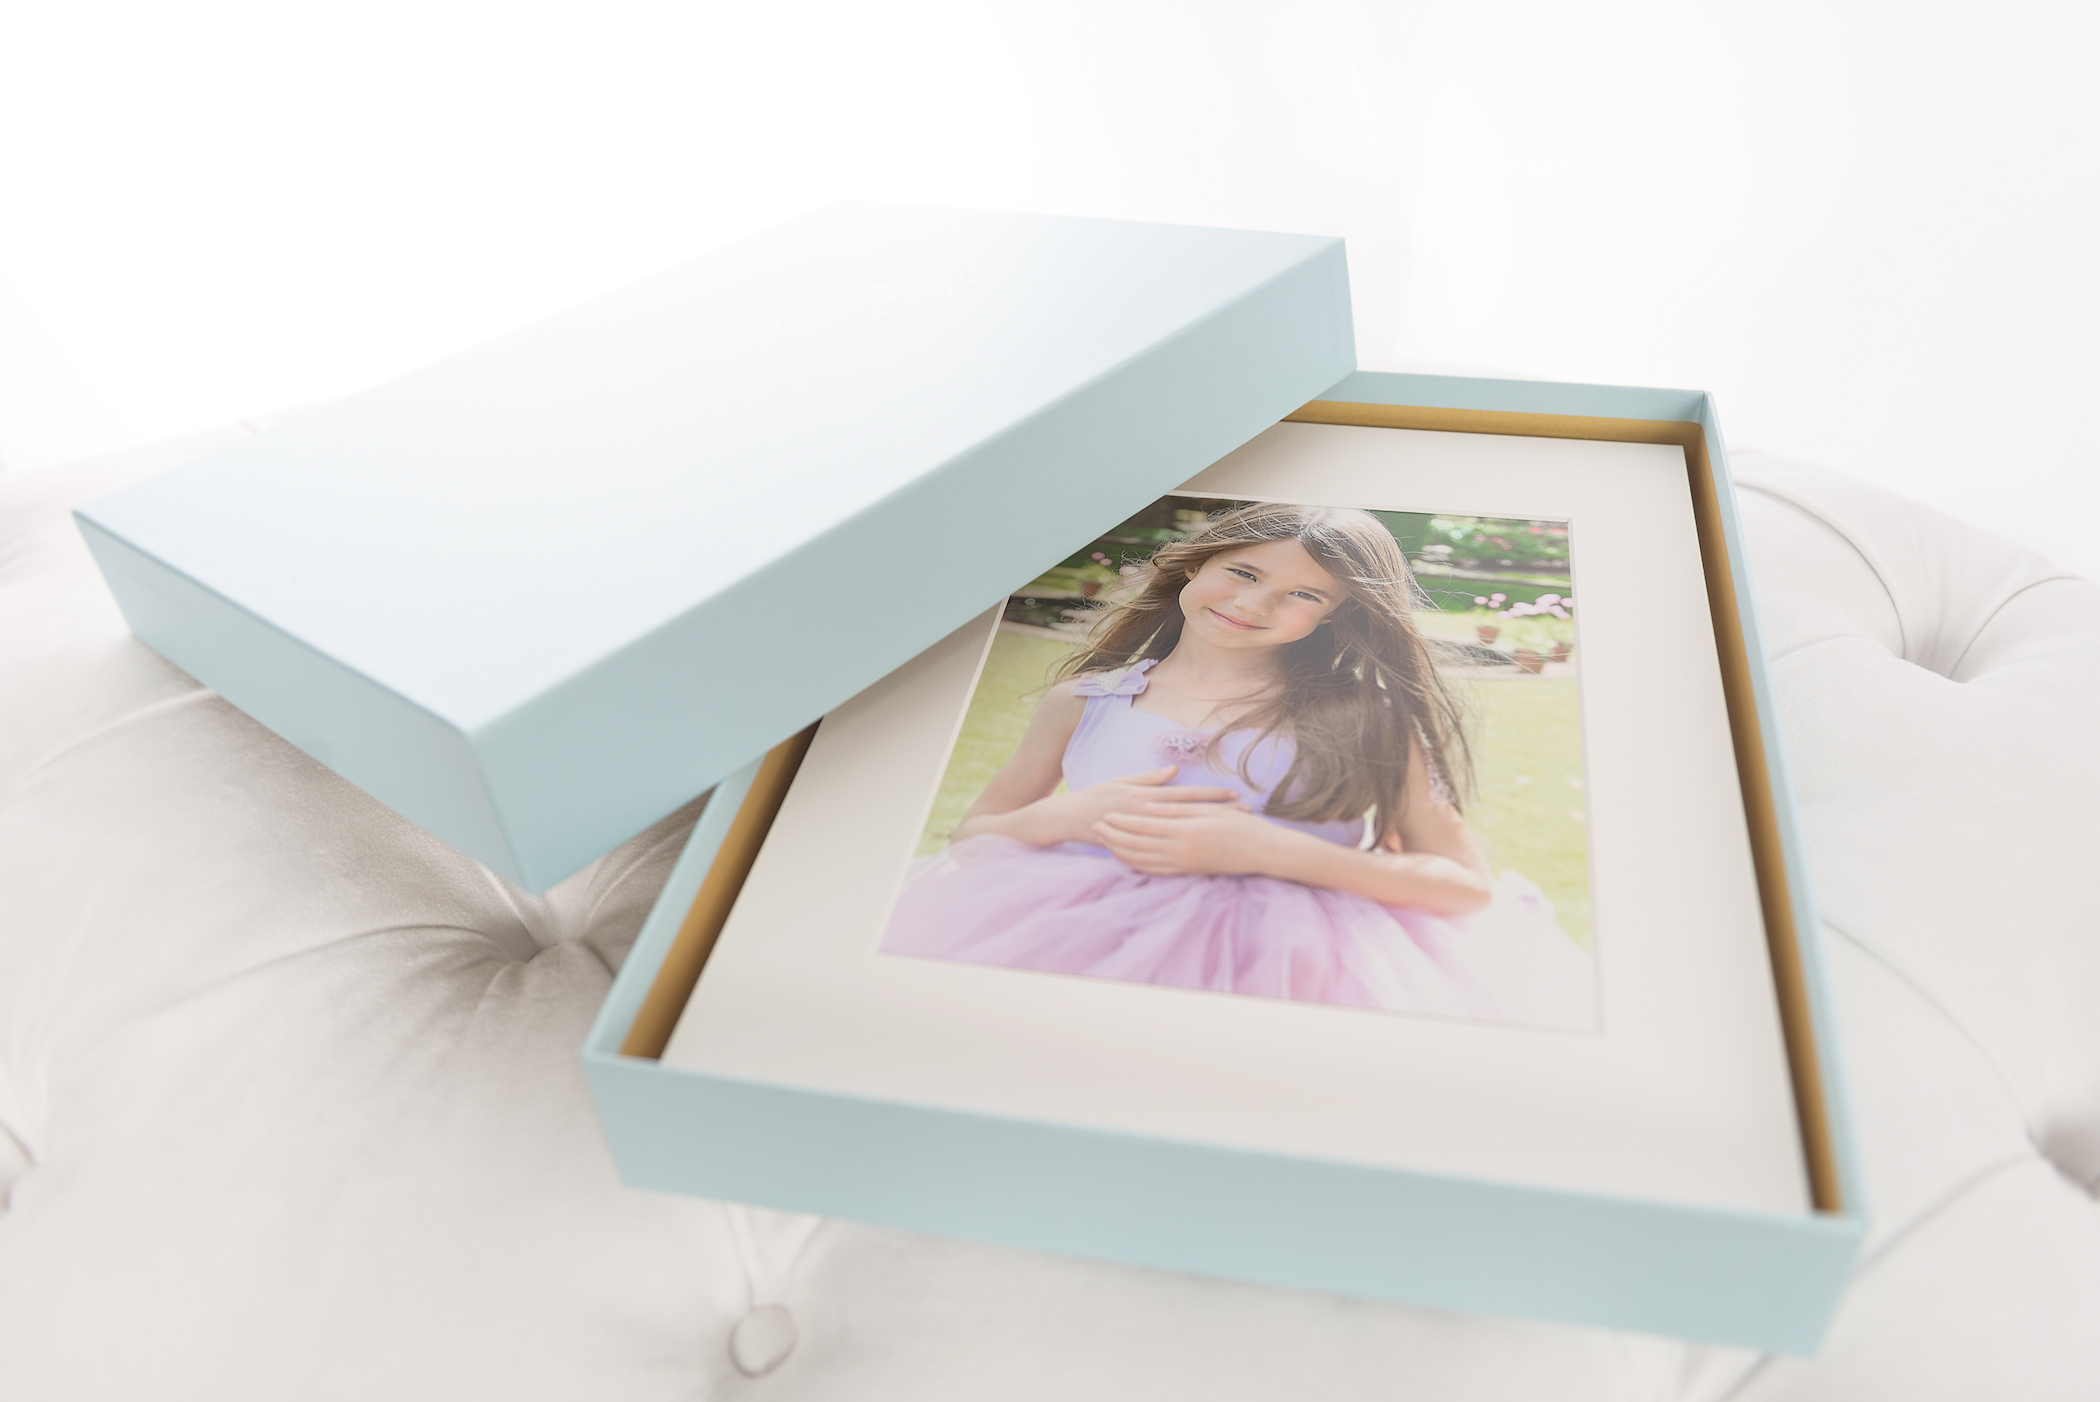 Our beautifully boxed, 11 x 14 matted, 8 x 10 print product.